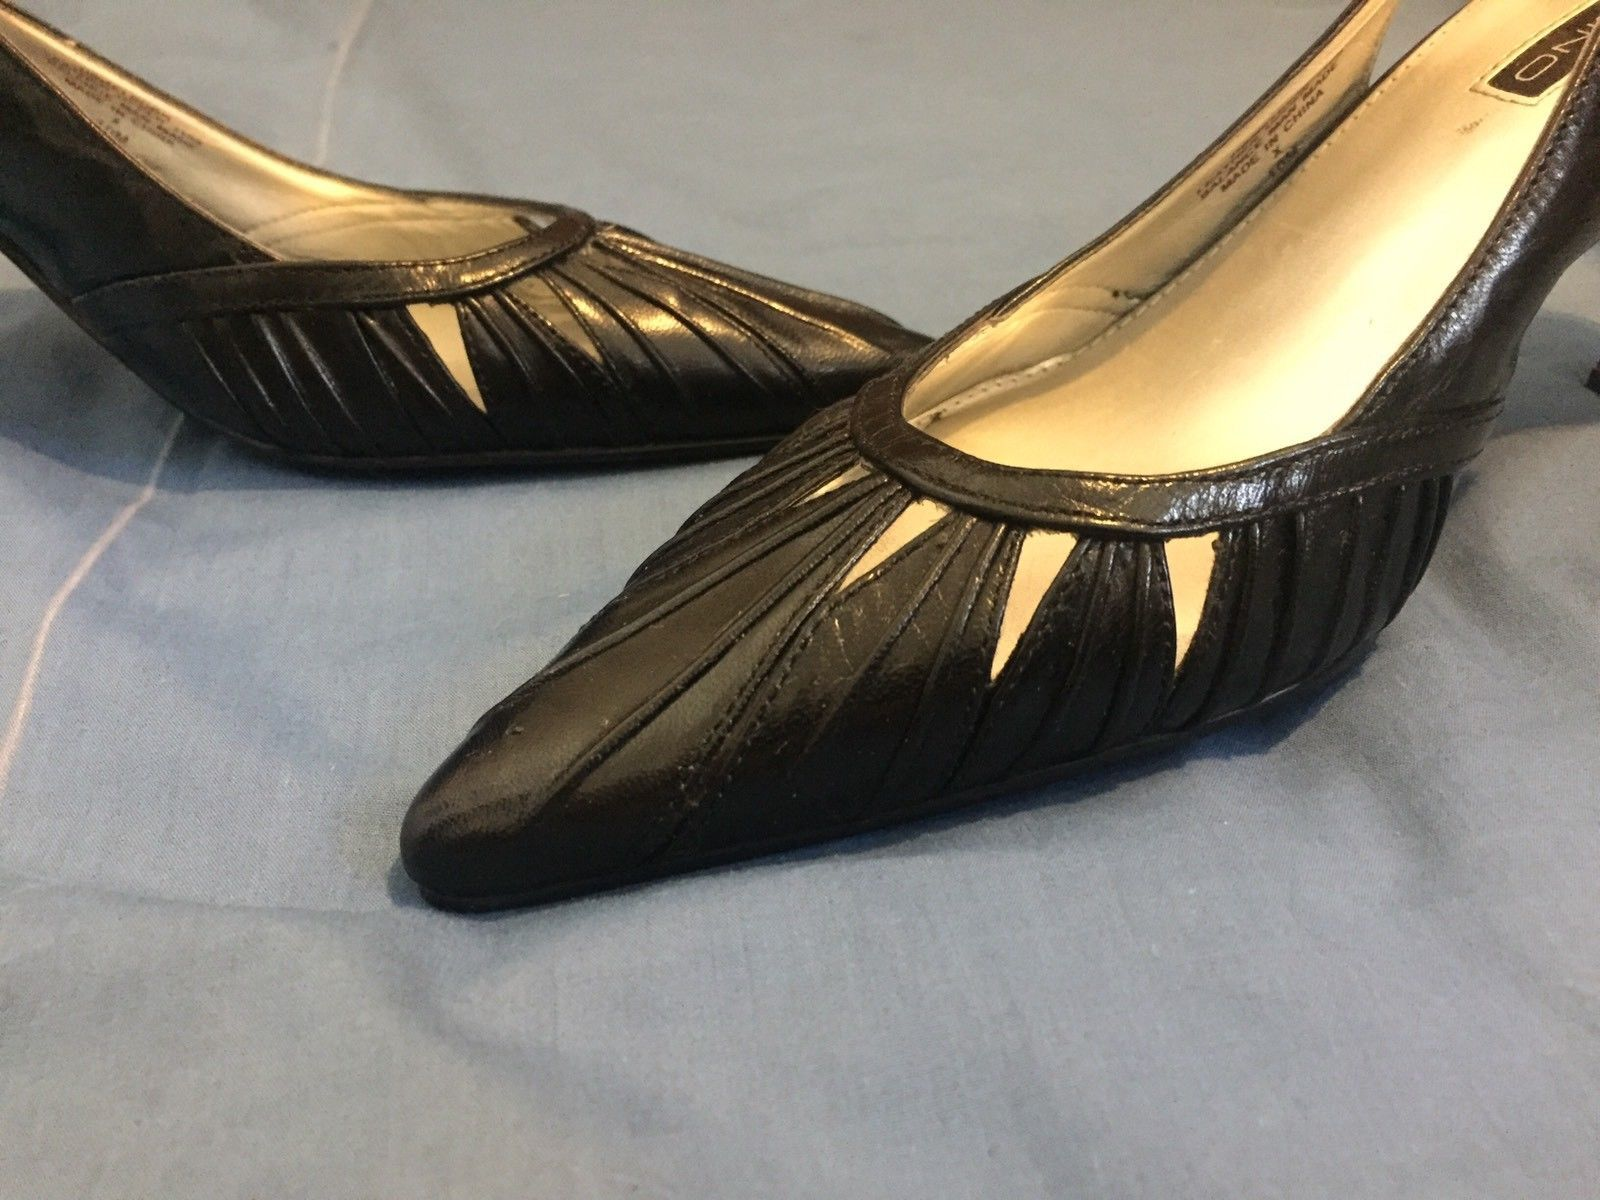 395d96c826 S l1600. S l1600. Previous. Bandolino Black Leather Pointed Toe Pumps Heels  Slingback 10M Free Shipping